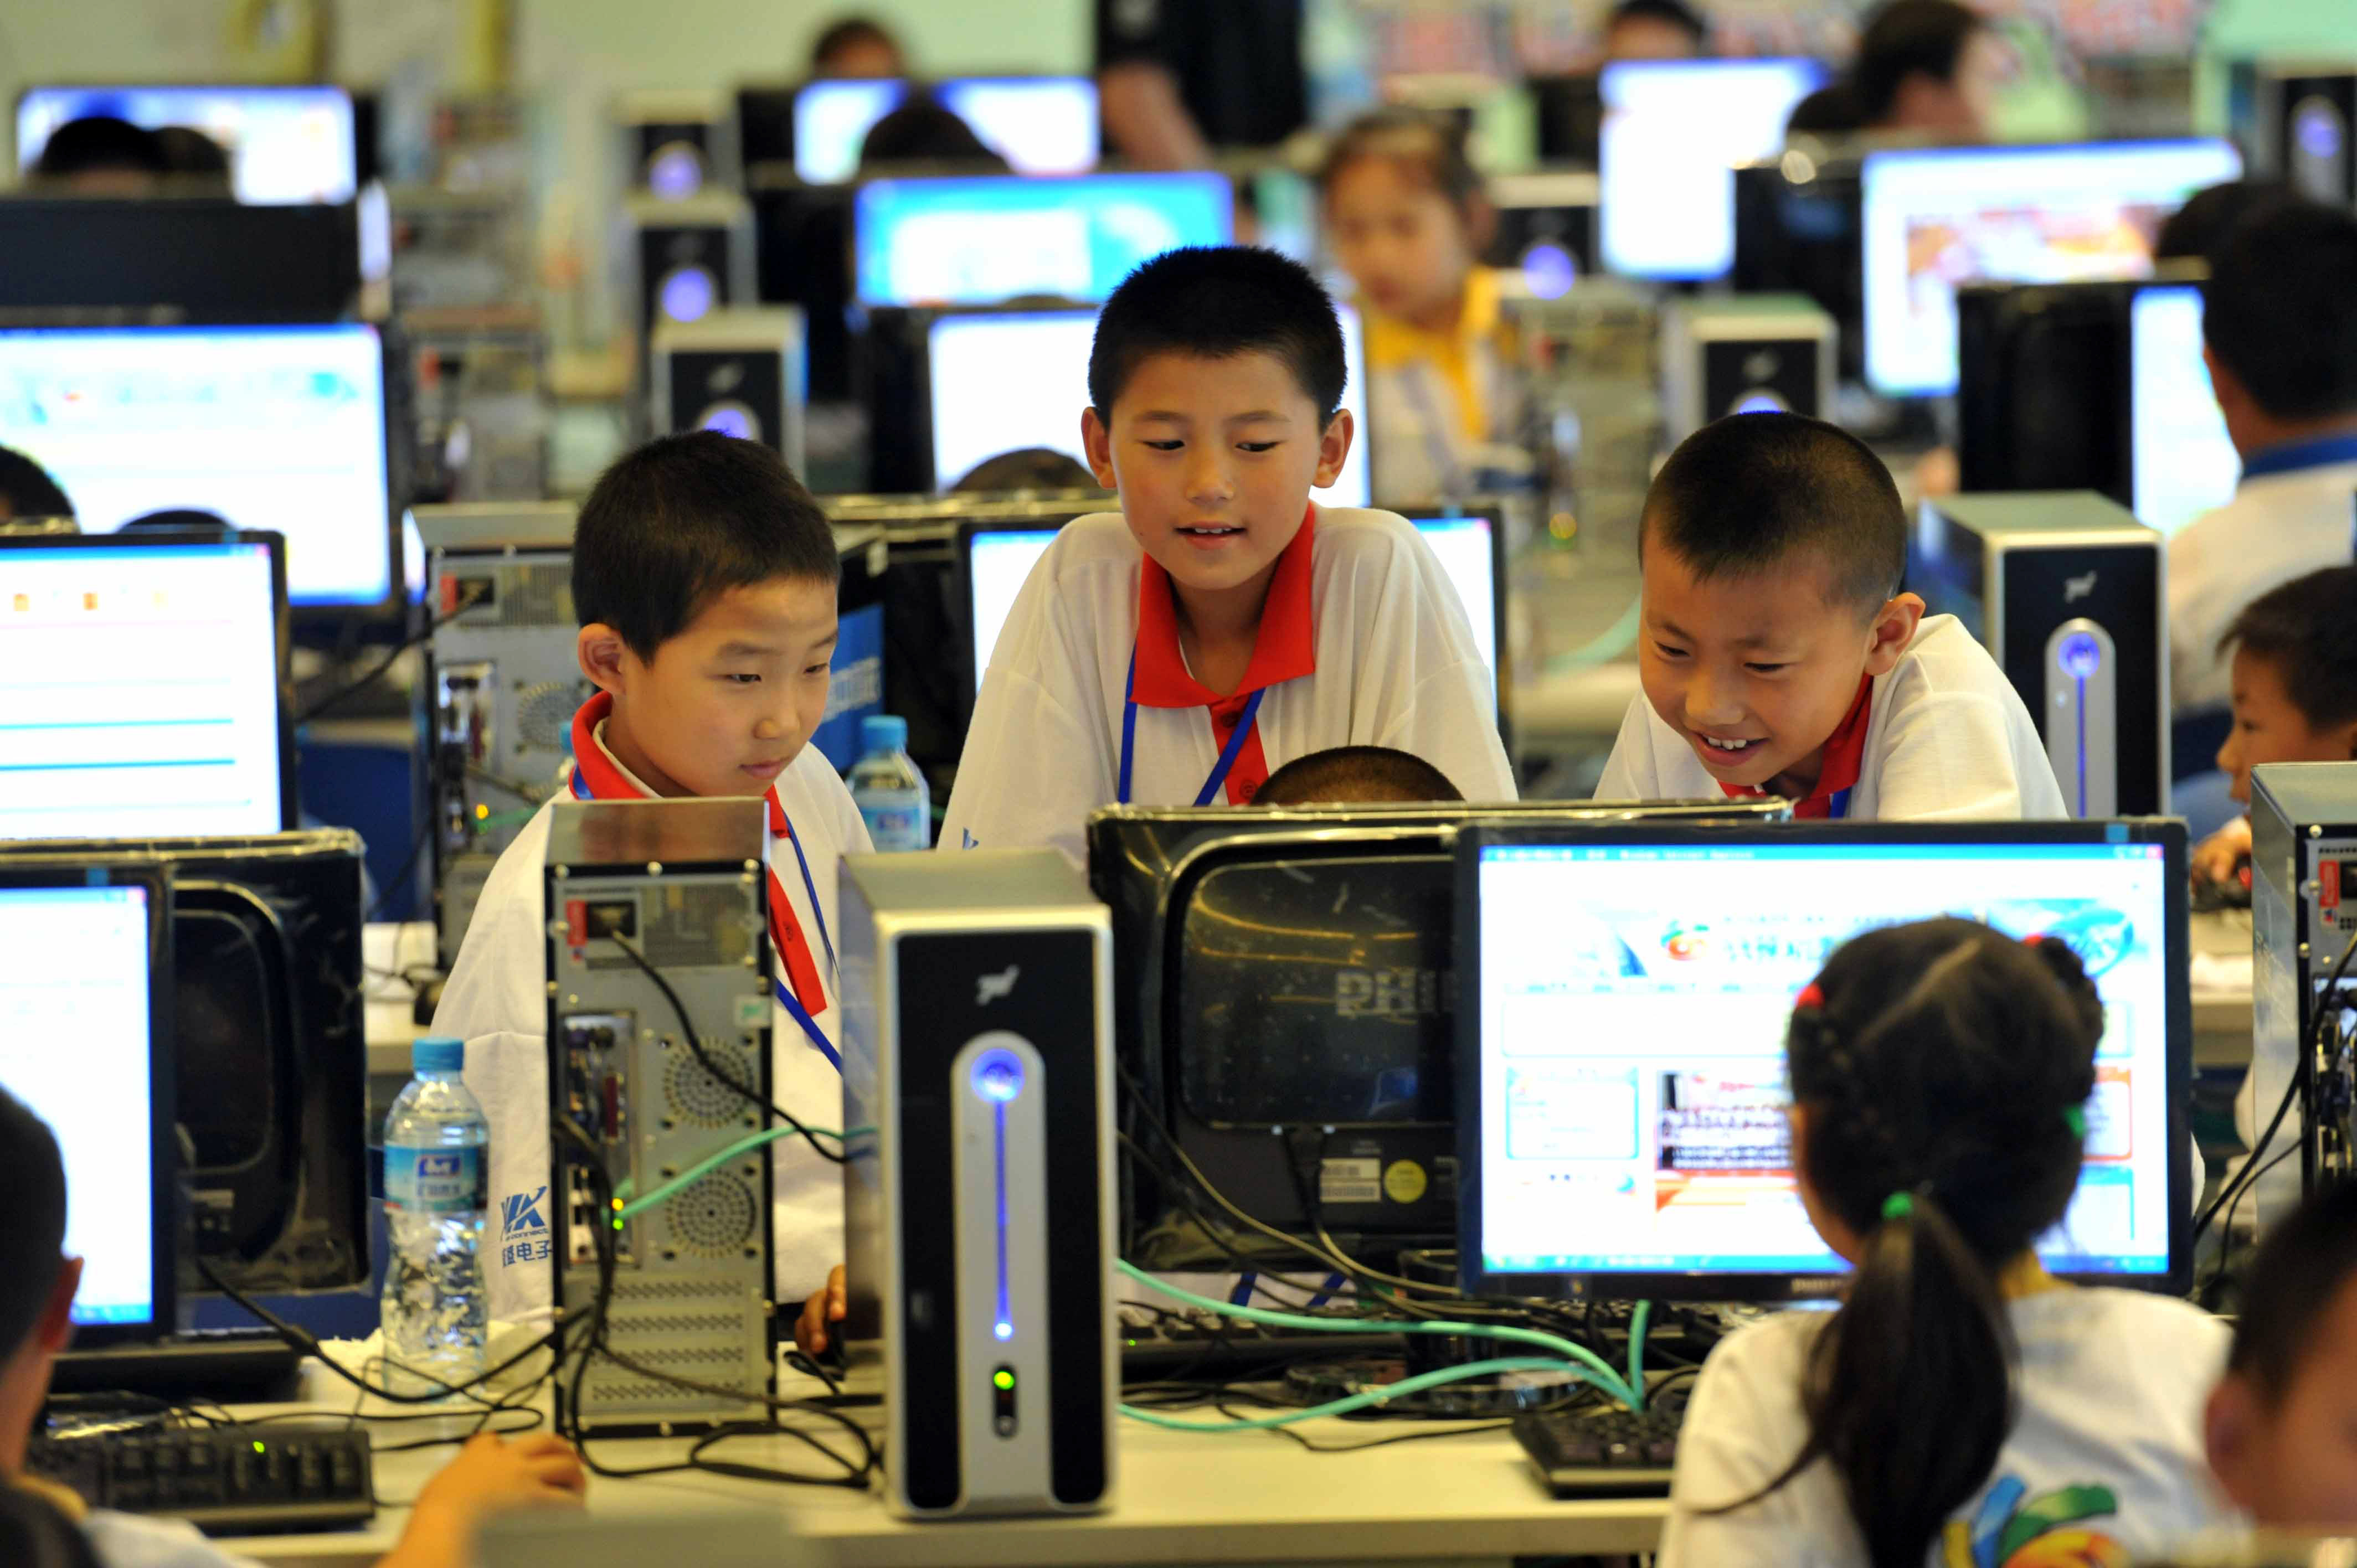 Chinese children attend a computer class to learn how to properly use the Internet in Beijing. (STR/AFP/Getty Images)